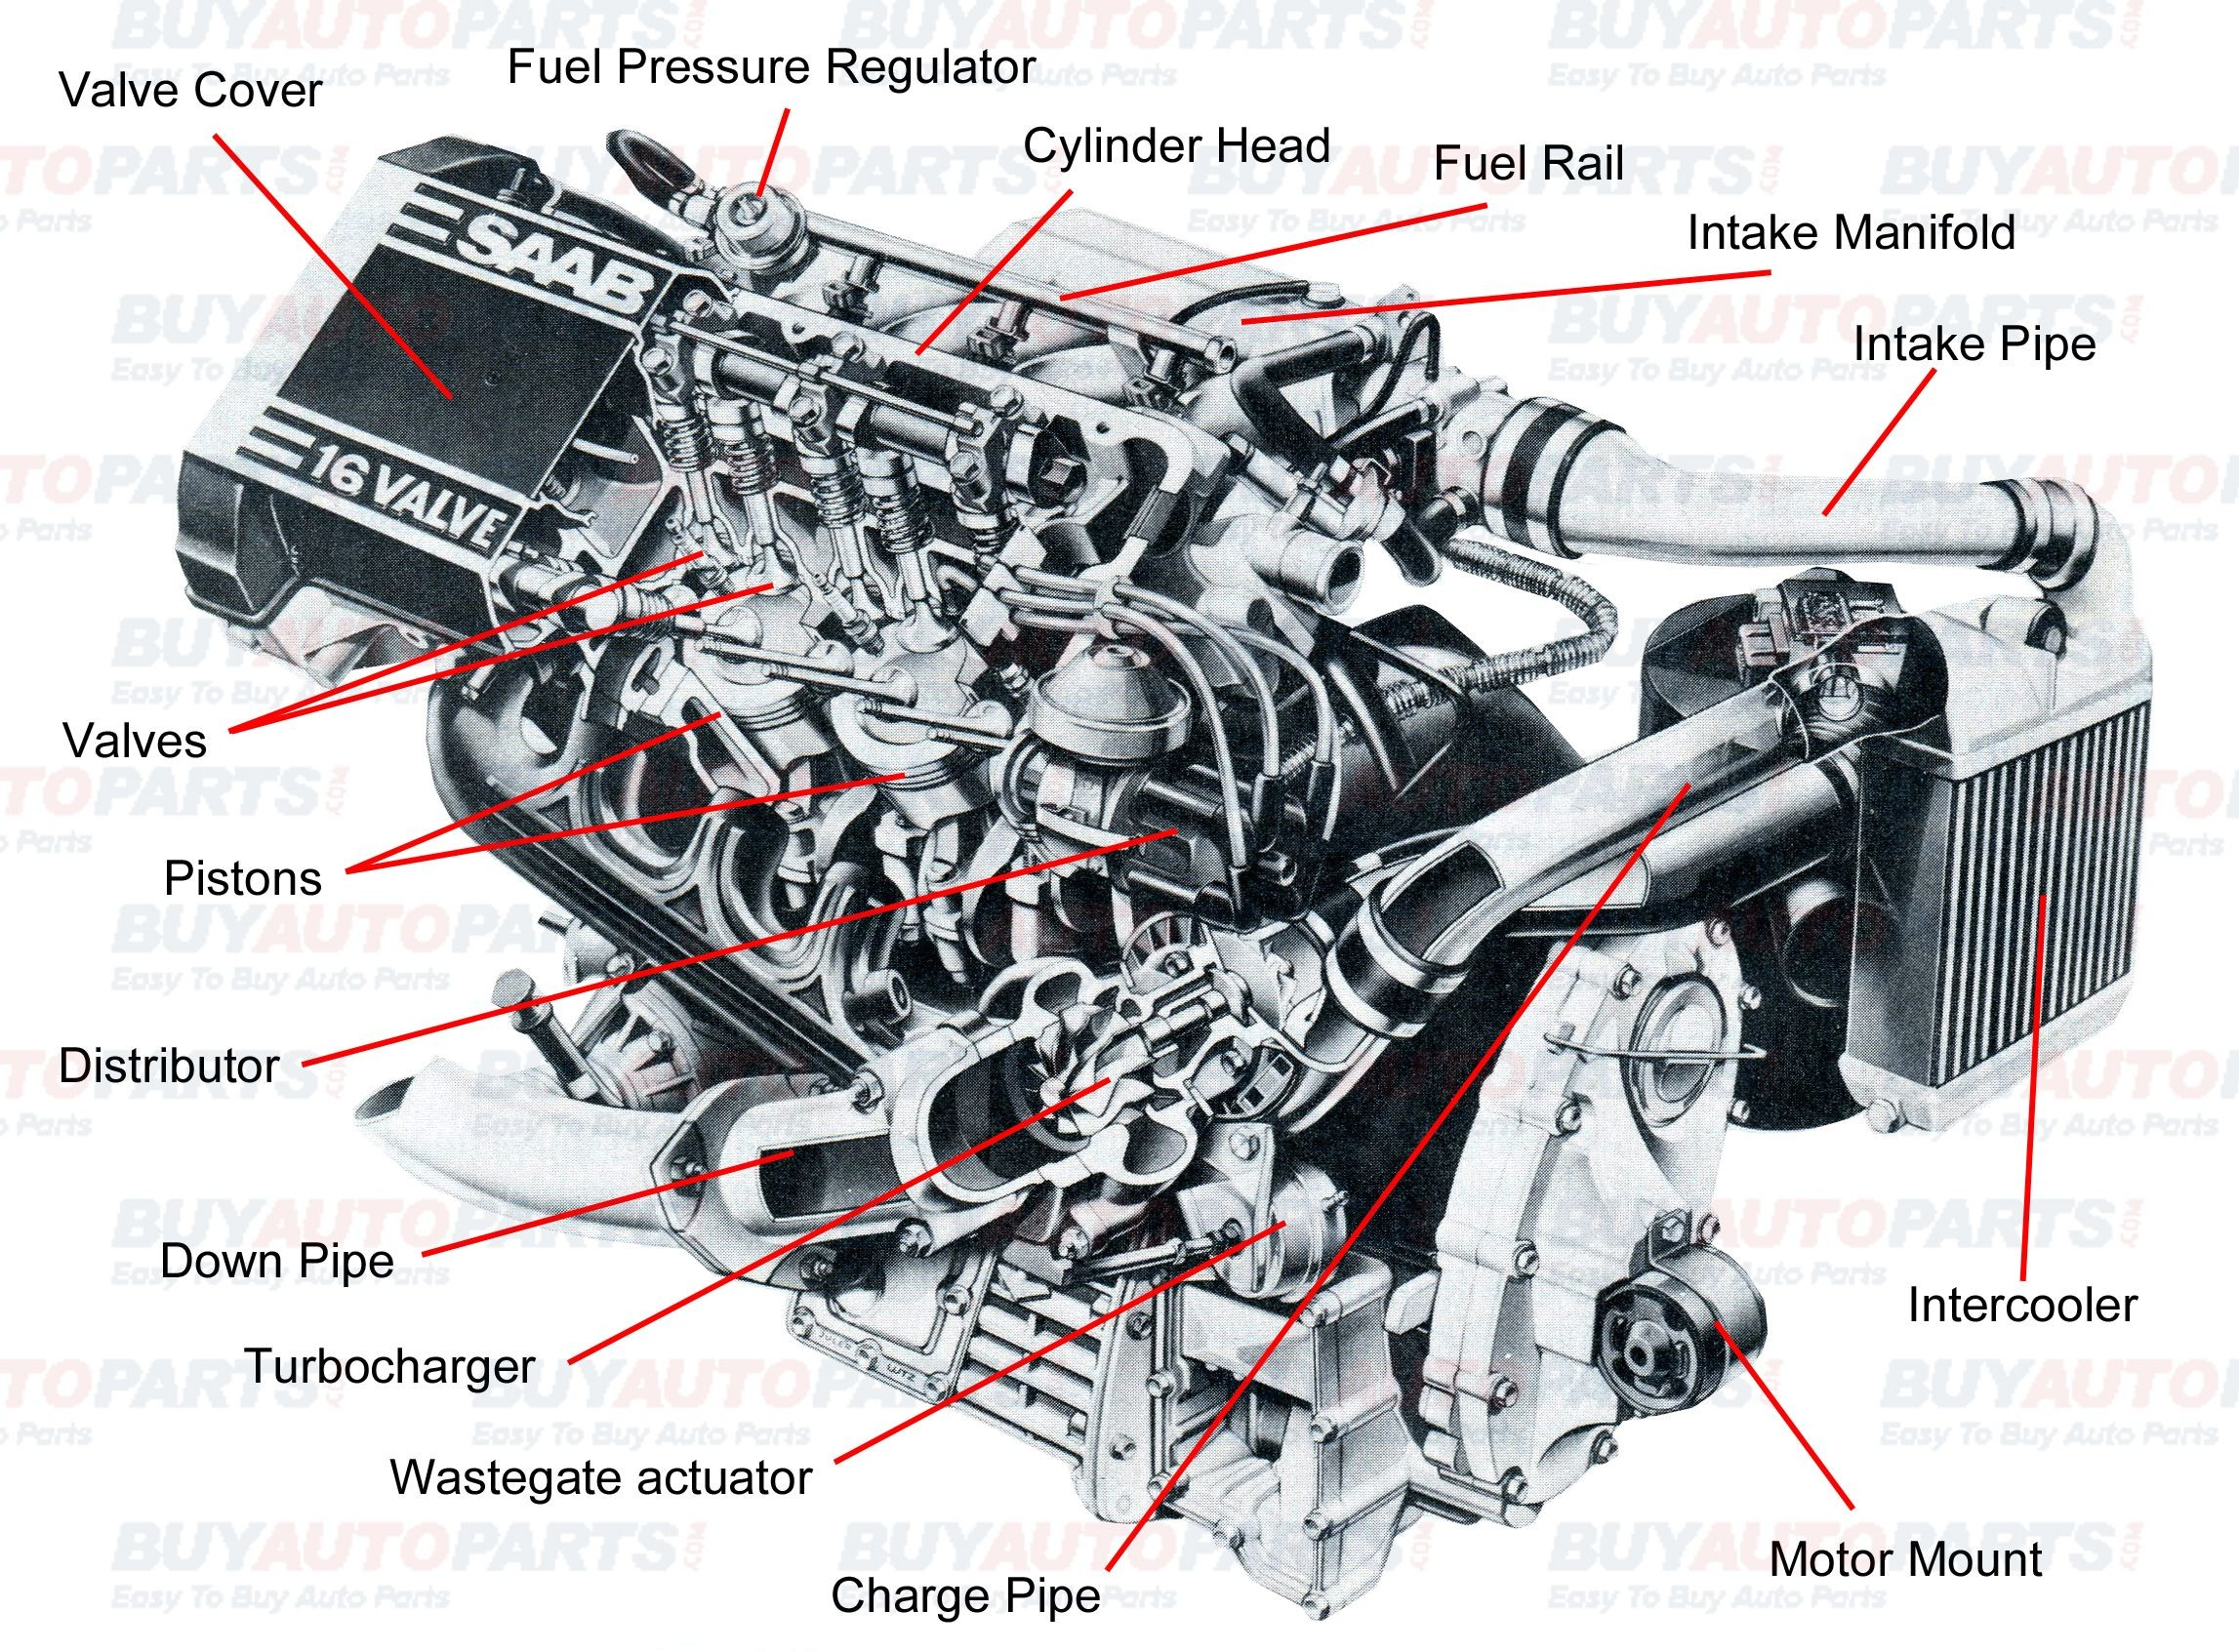 Diagram Of A Car Engine Pin by Jimmiejanet Testellamwfz On What Does An Engine with Turbo